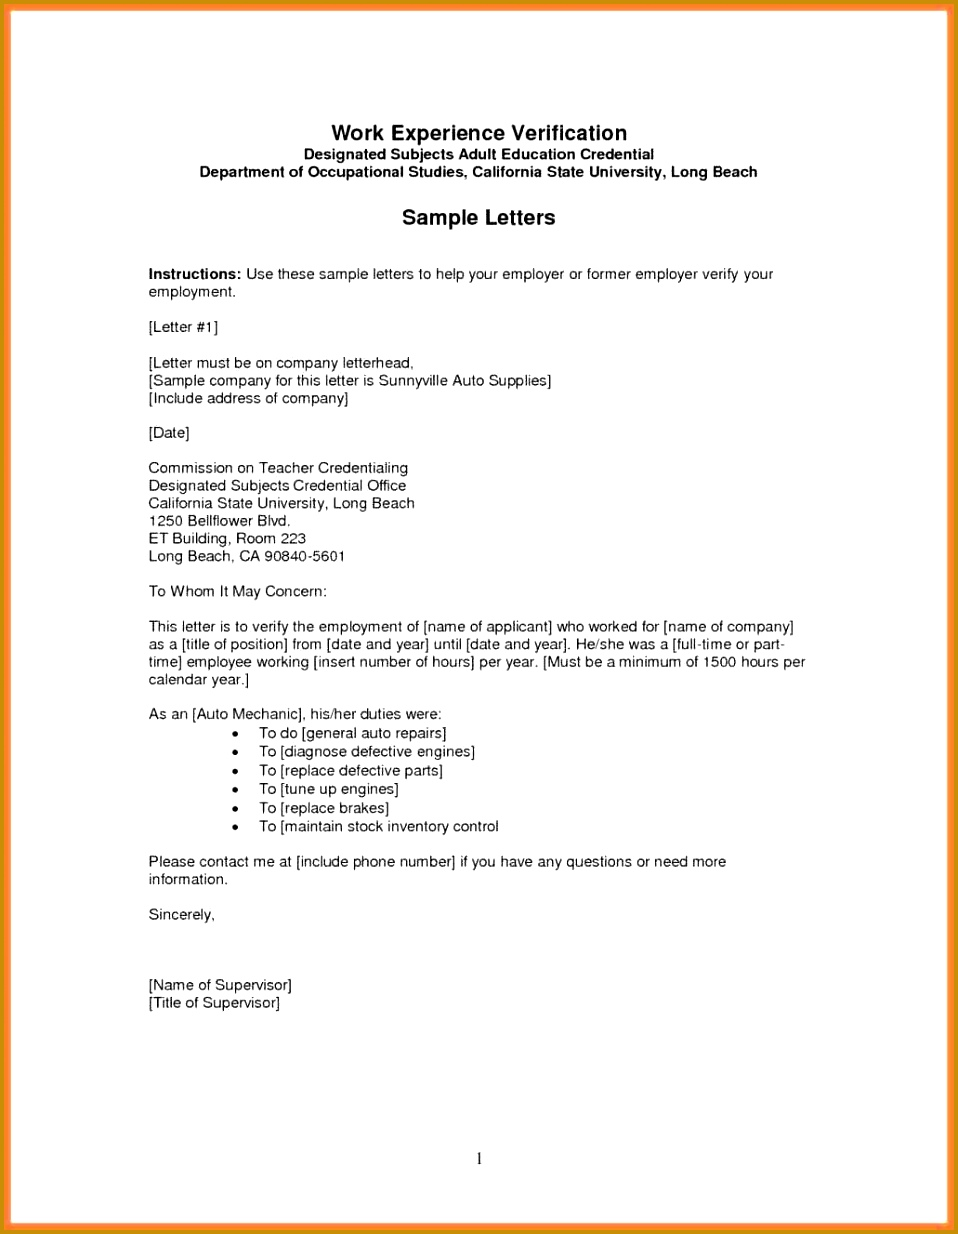 cashier resumes confirmation Employers Letter Confirming Employment of employment letter to employer cashier resumes from verifying 1234958